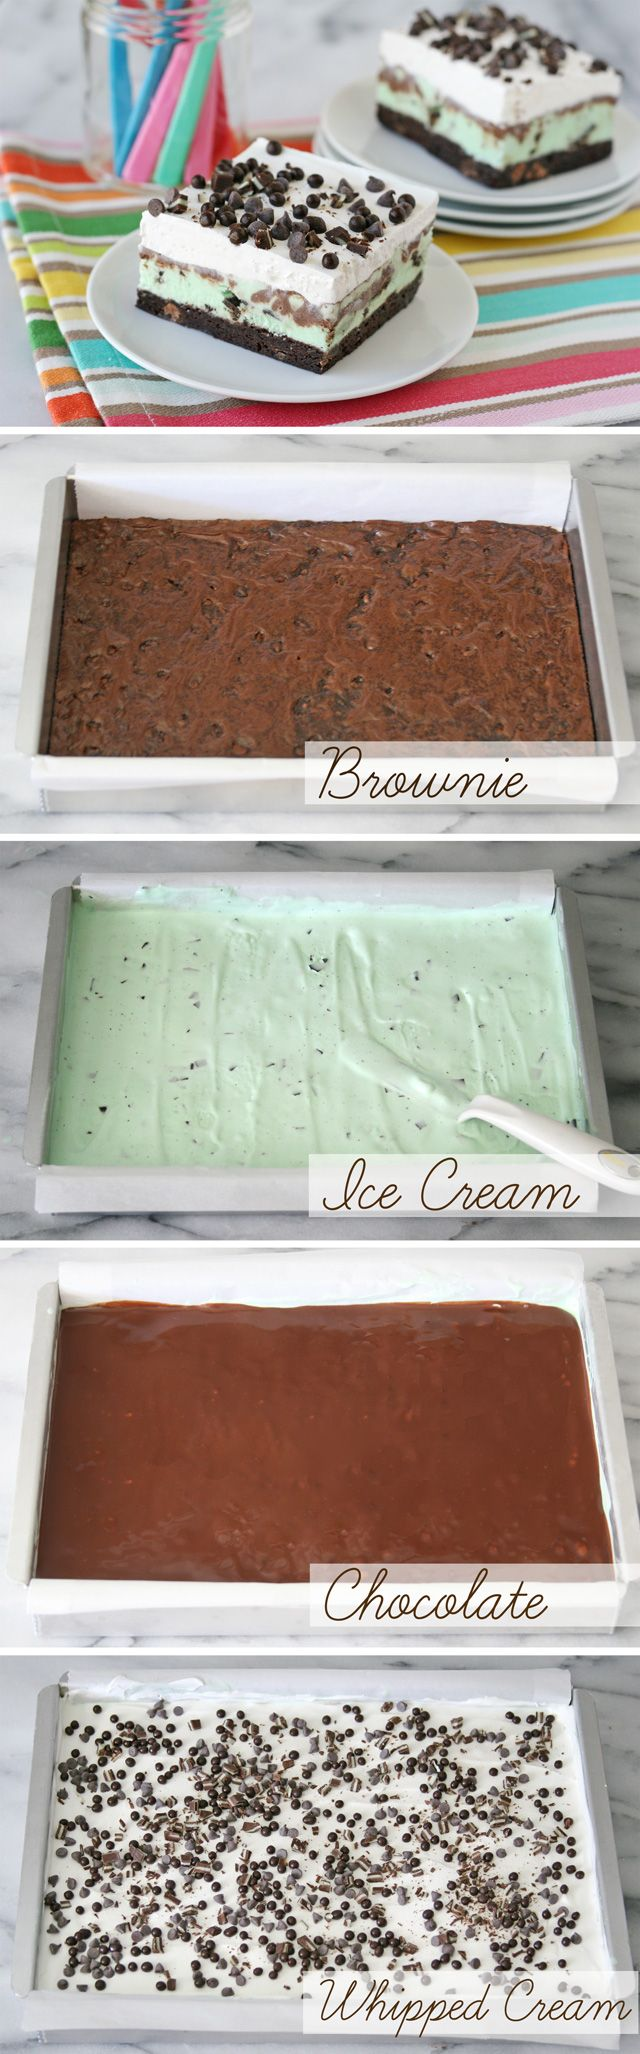 Mint Brownie Ice Cream Bars - Easy to make and so incredibly good!! I'd just switch out the mint ice cream for strawberry